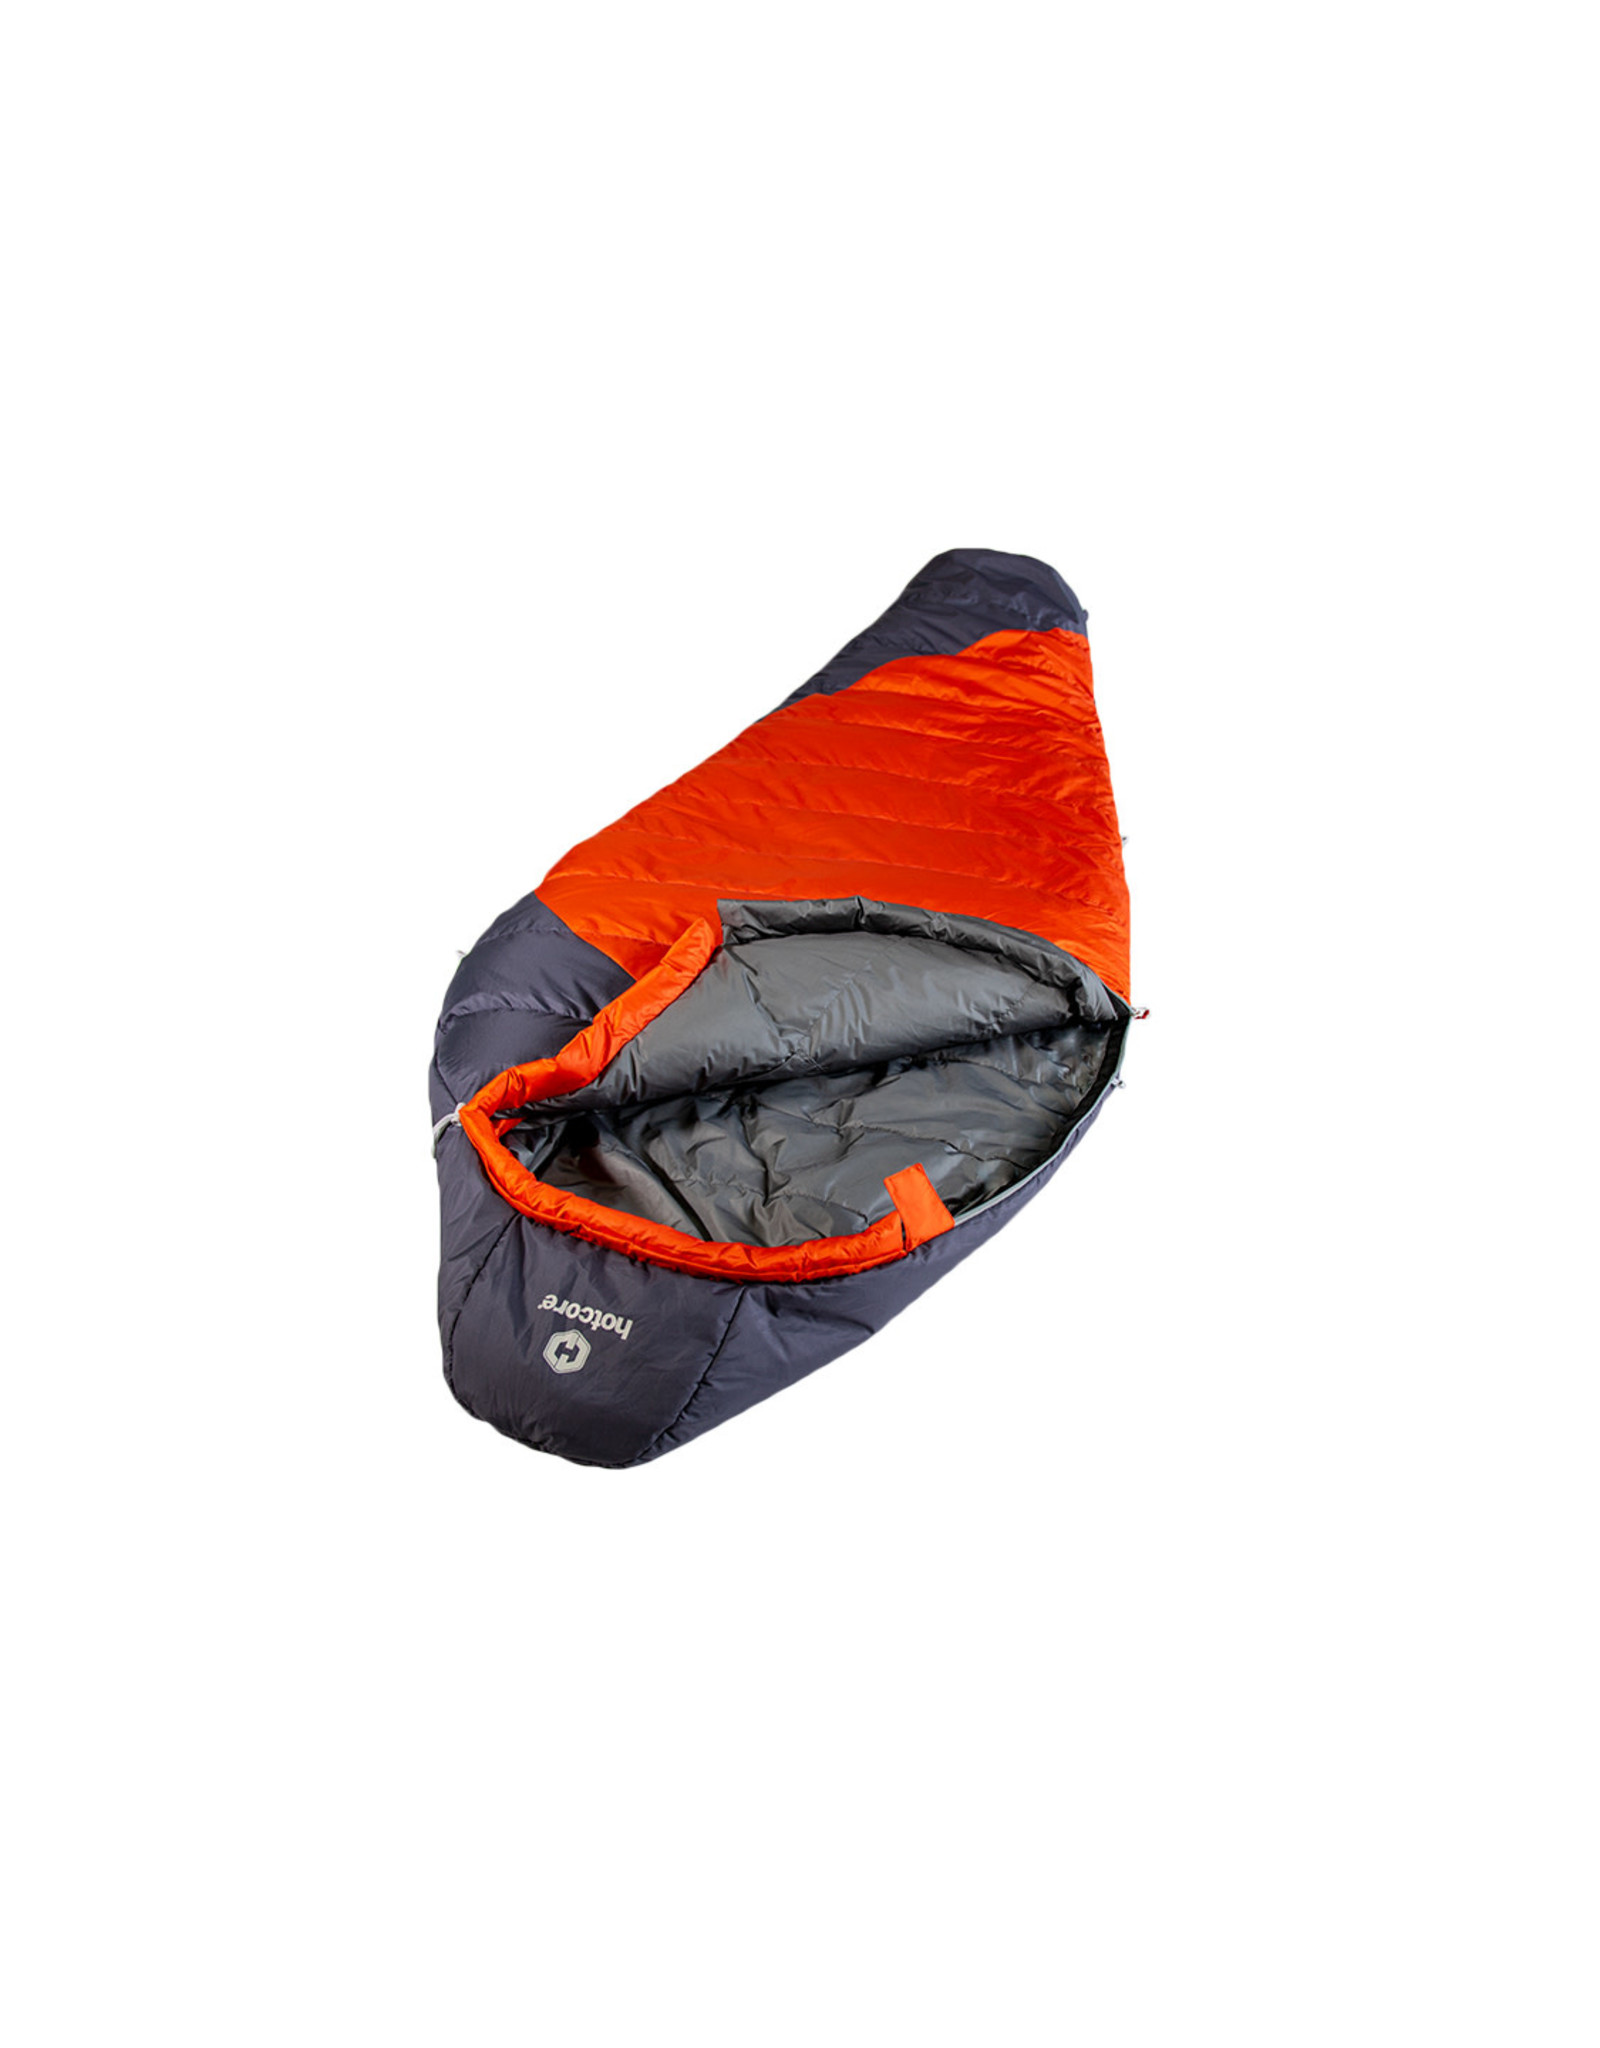 Hotcore Outdoor Products Hotcore Fusion 50 Sleeping Bag